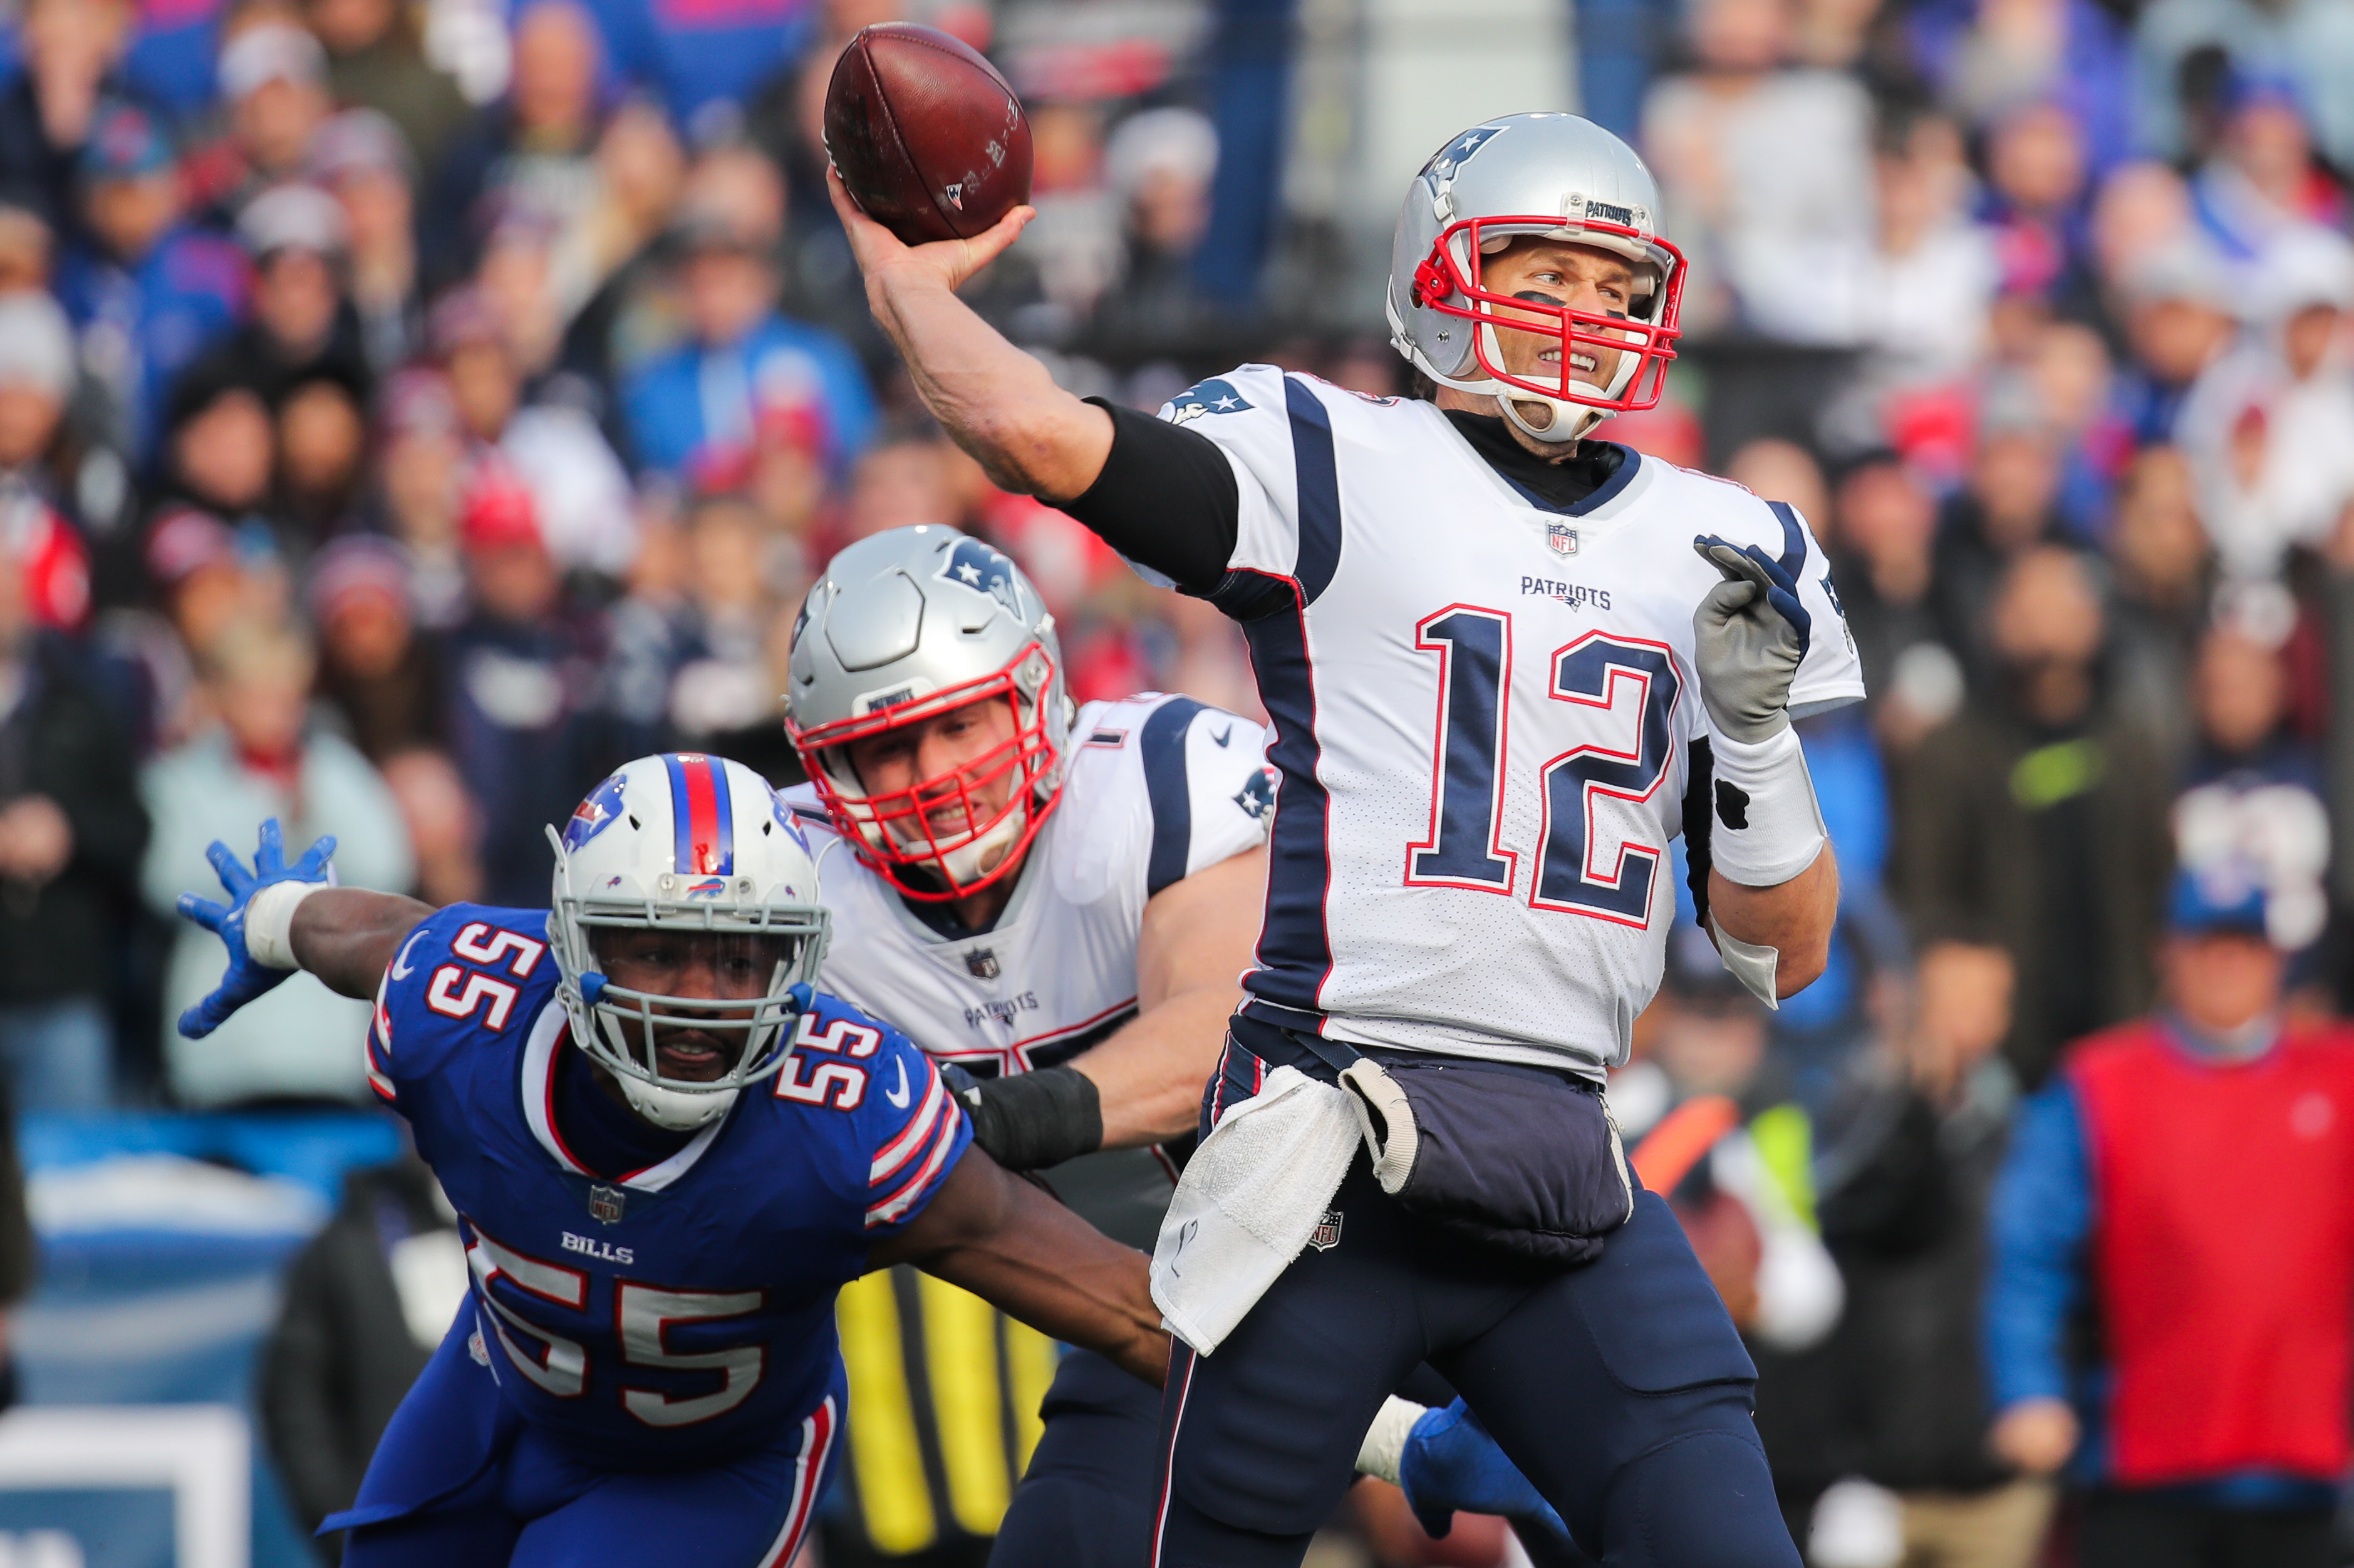 New England Patriots Vs Buffalo Bills Game 15 Preview And Prediction